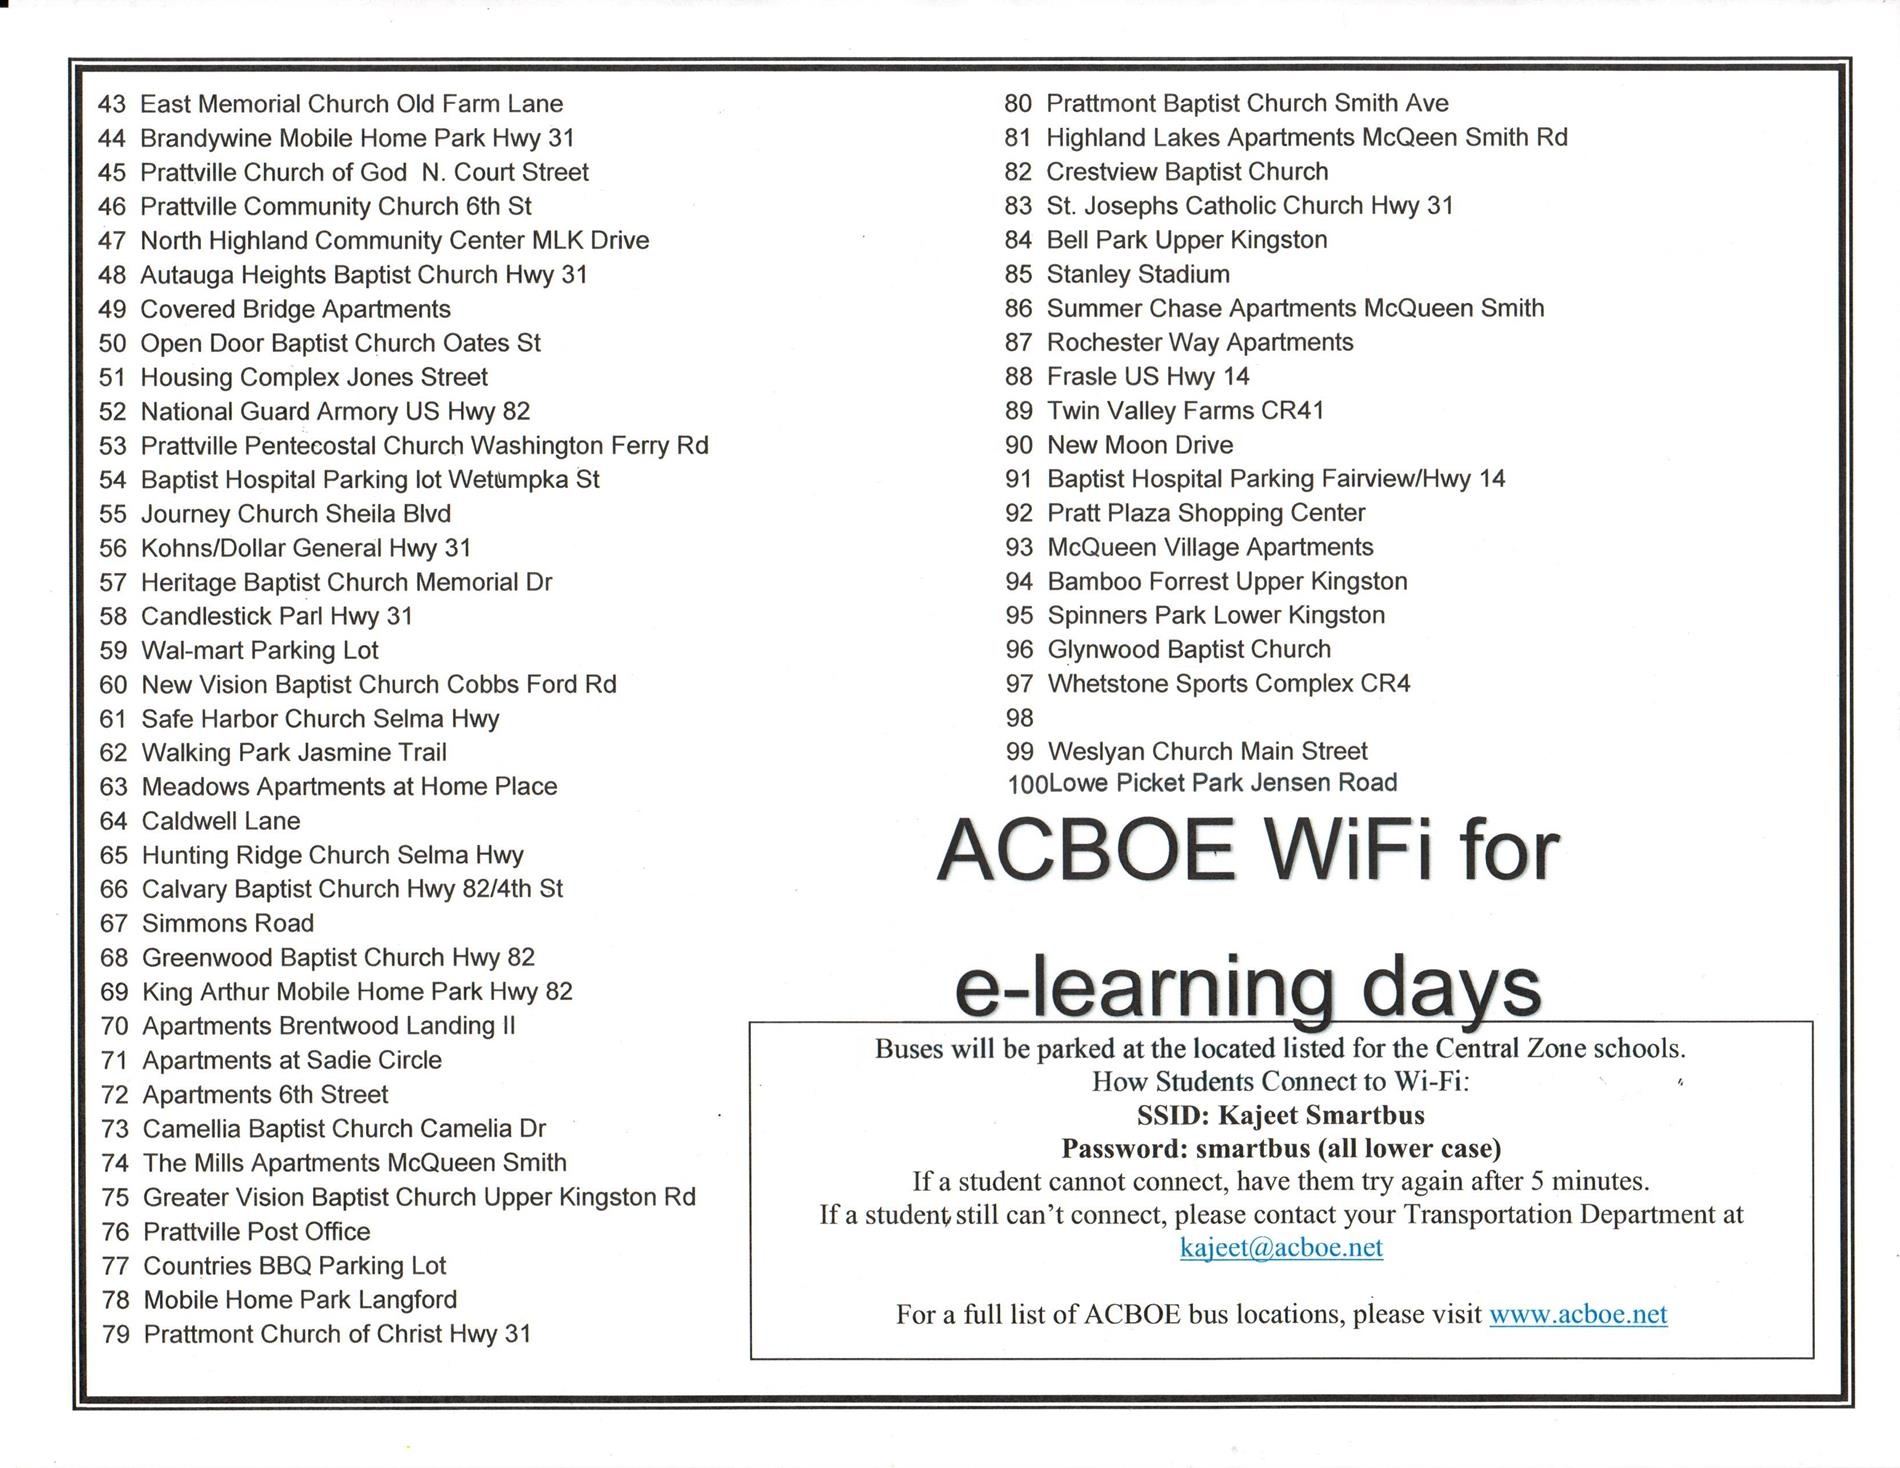 ACBOE Wifi Bus Locations